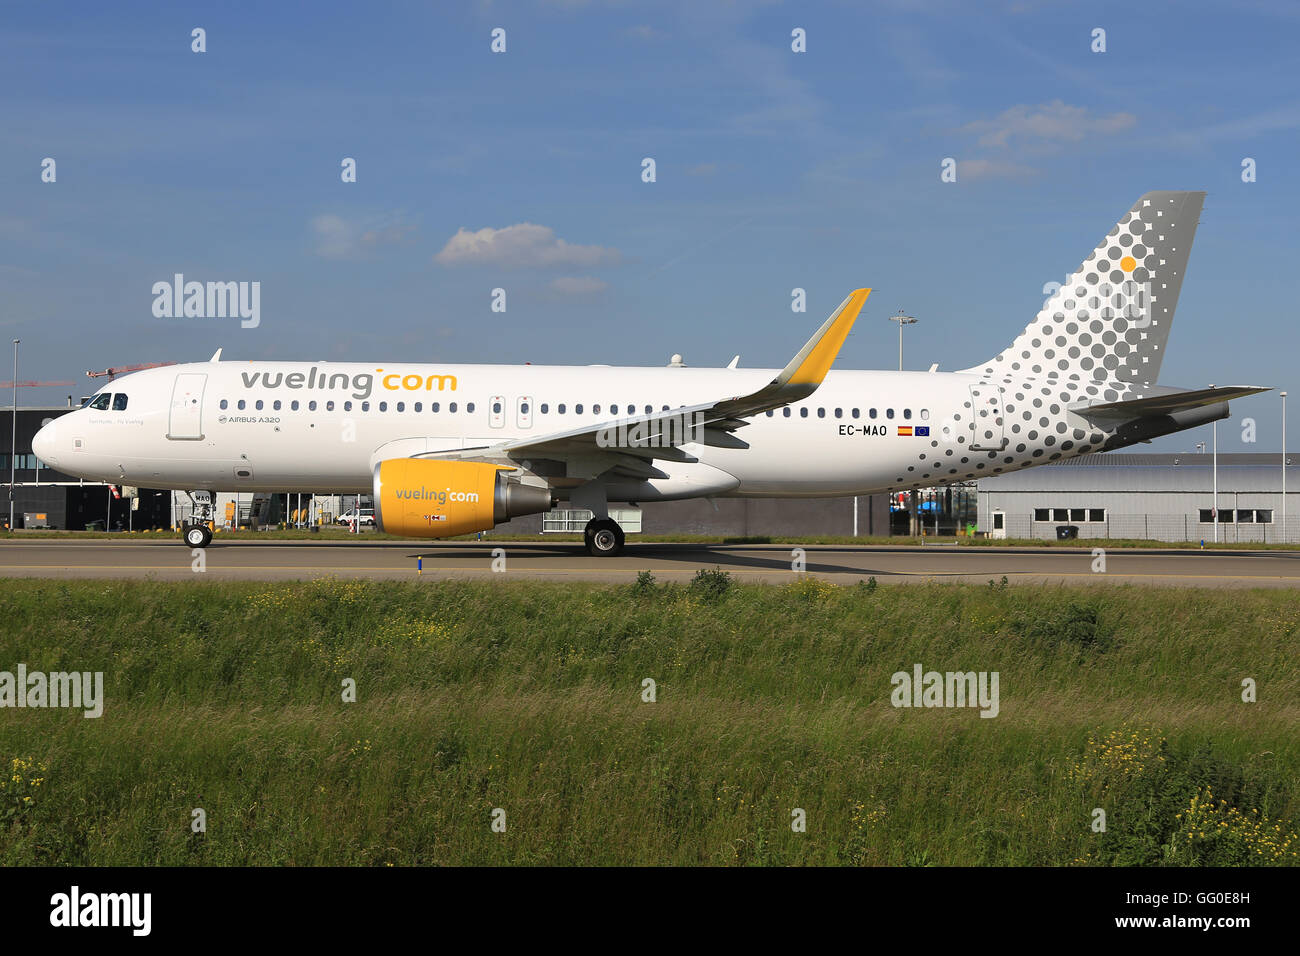 Amsterdam/Netherland August 5, 2015: Aurbus A320 from Vueling at AmsterdamAirport. - Stock Image